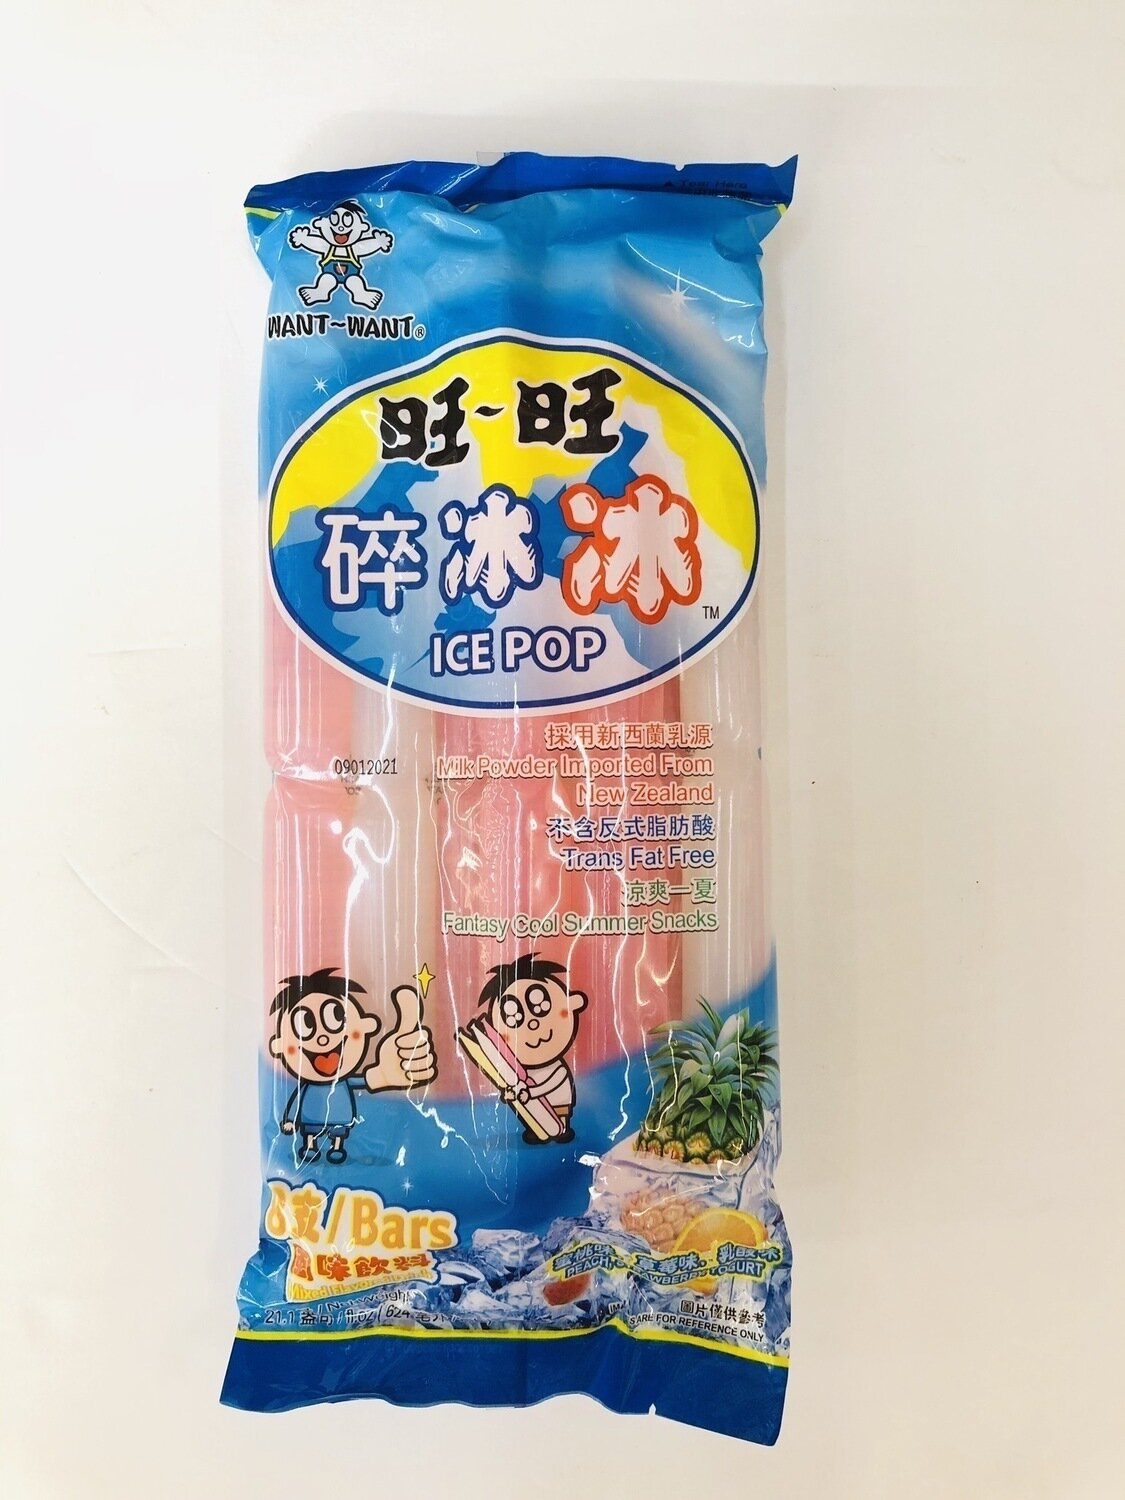 旺旺碎冰冰风味饮料 WANT~WANT ICE POP Mixed Flavored Drink~8 Bars 21.1oz(624ml)